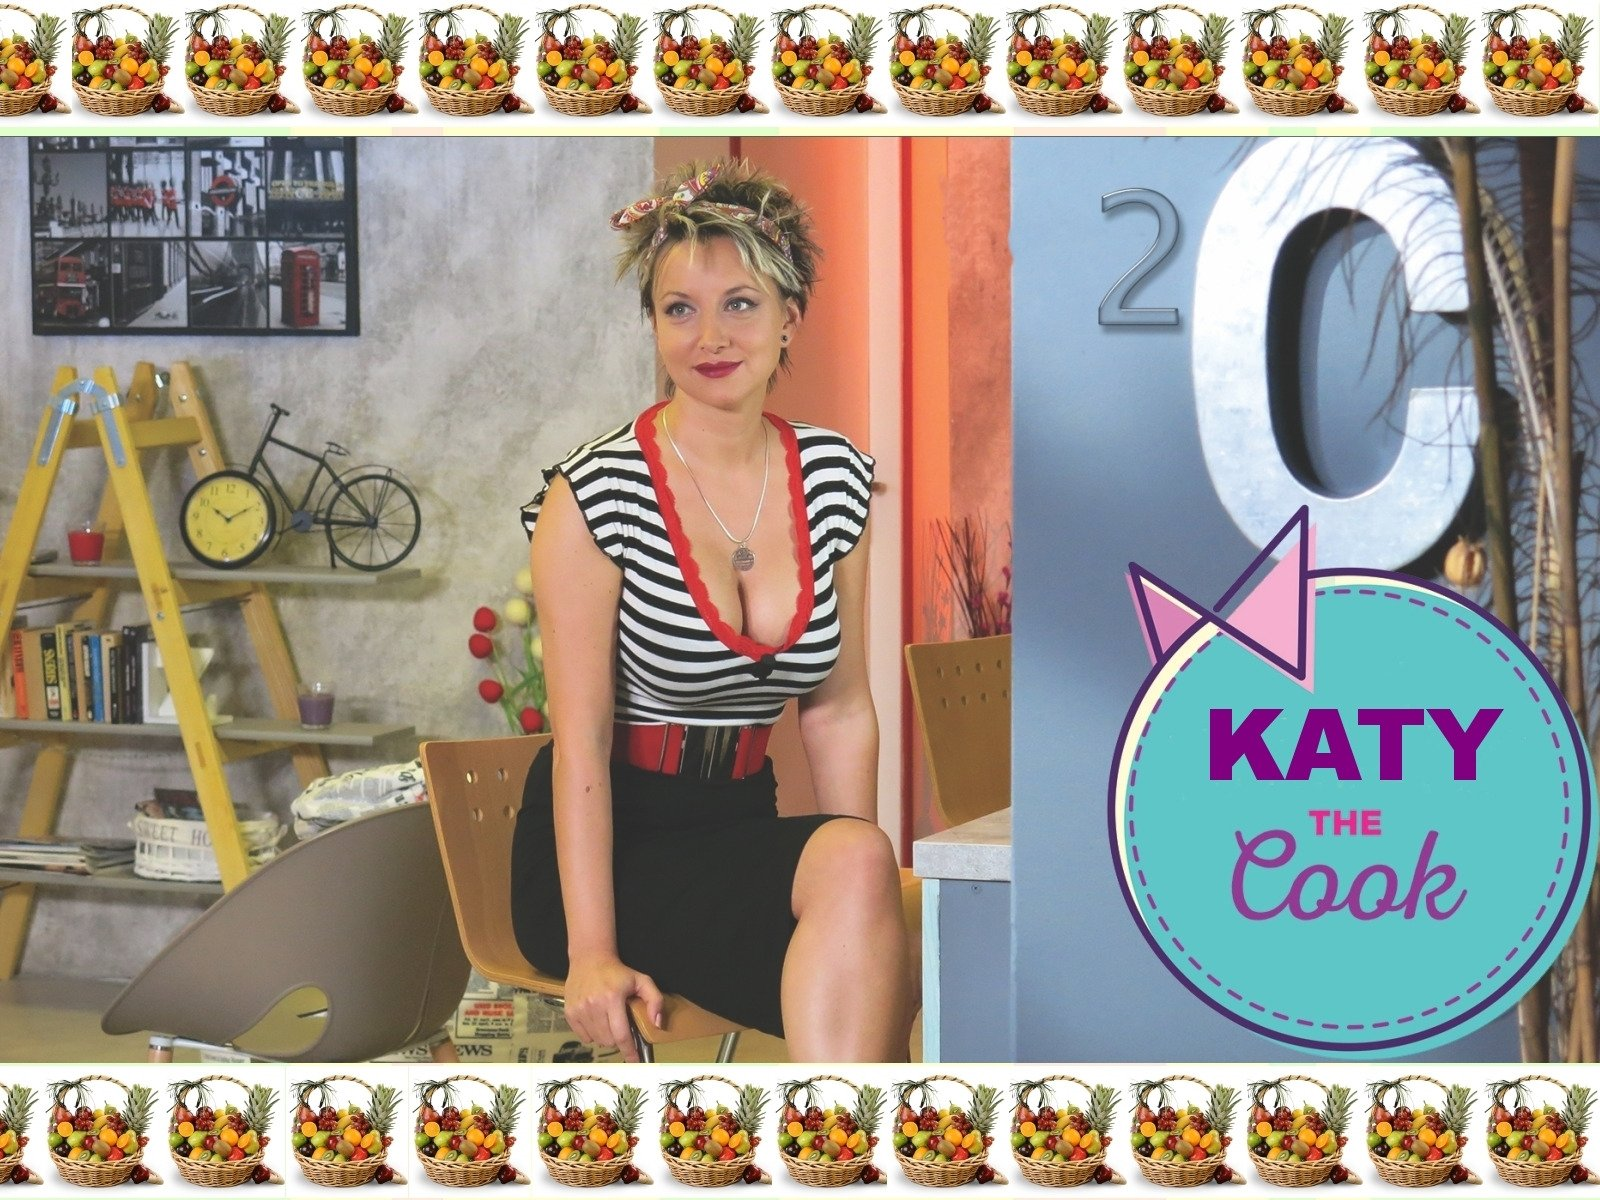 Katy the Cook - Season 2